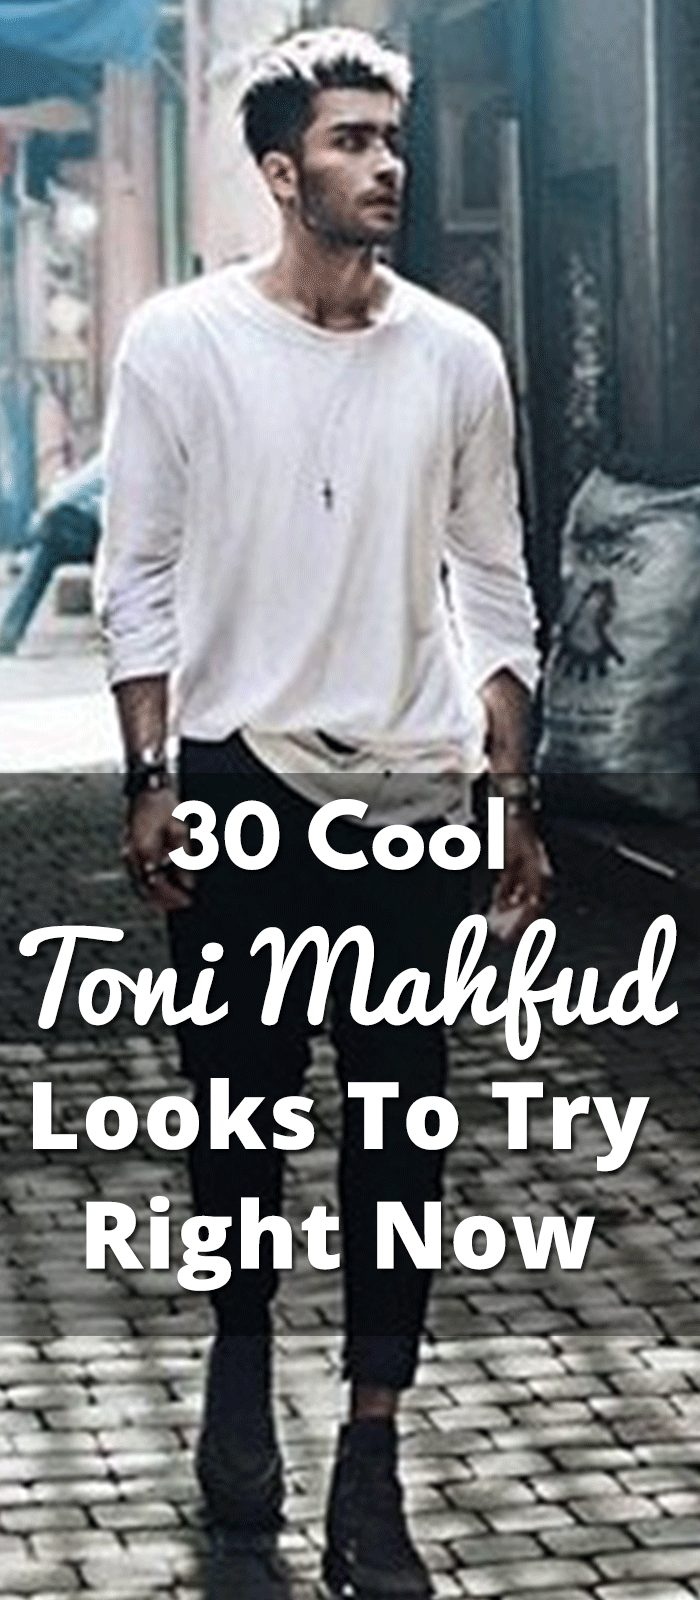 30 Cool Toni Mahfud Looks To Try Right Now